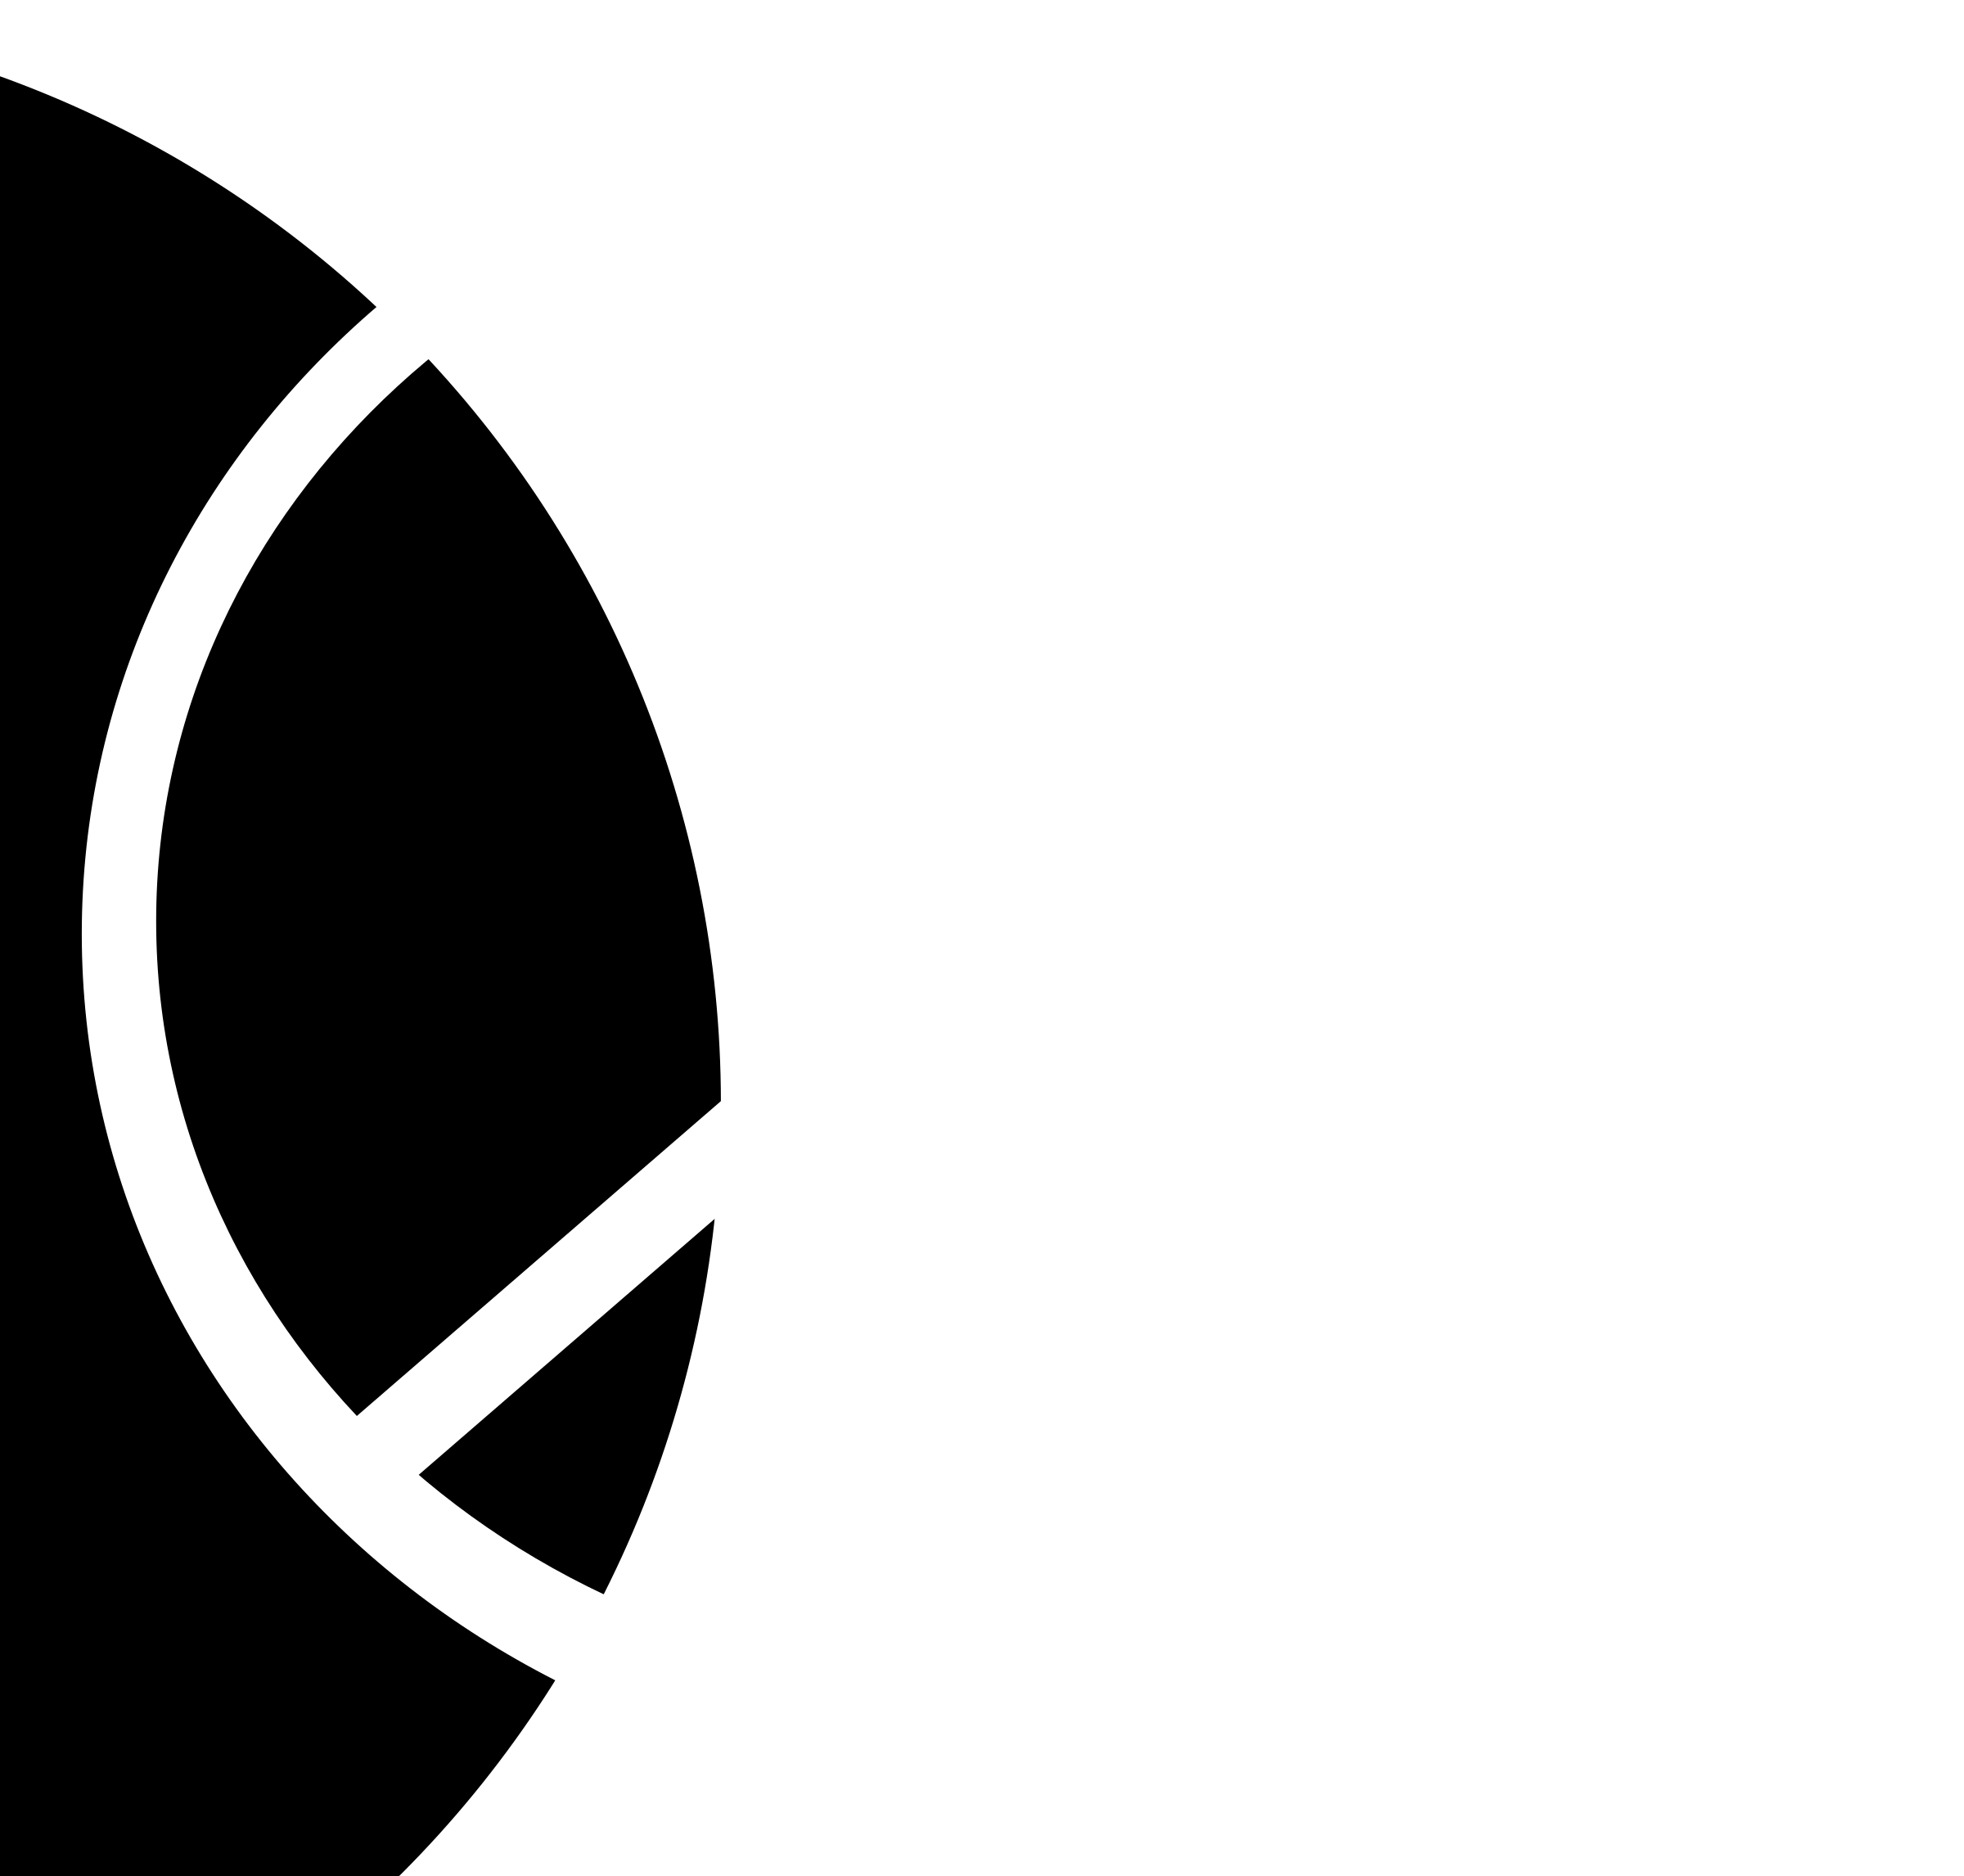 peace symbol 2 petri lum 01 by Anonymous